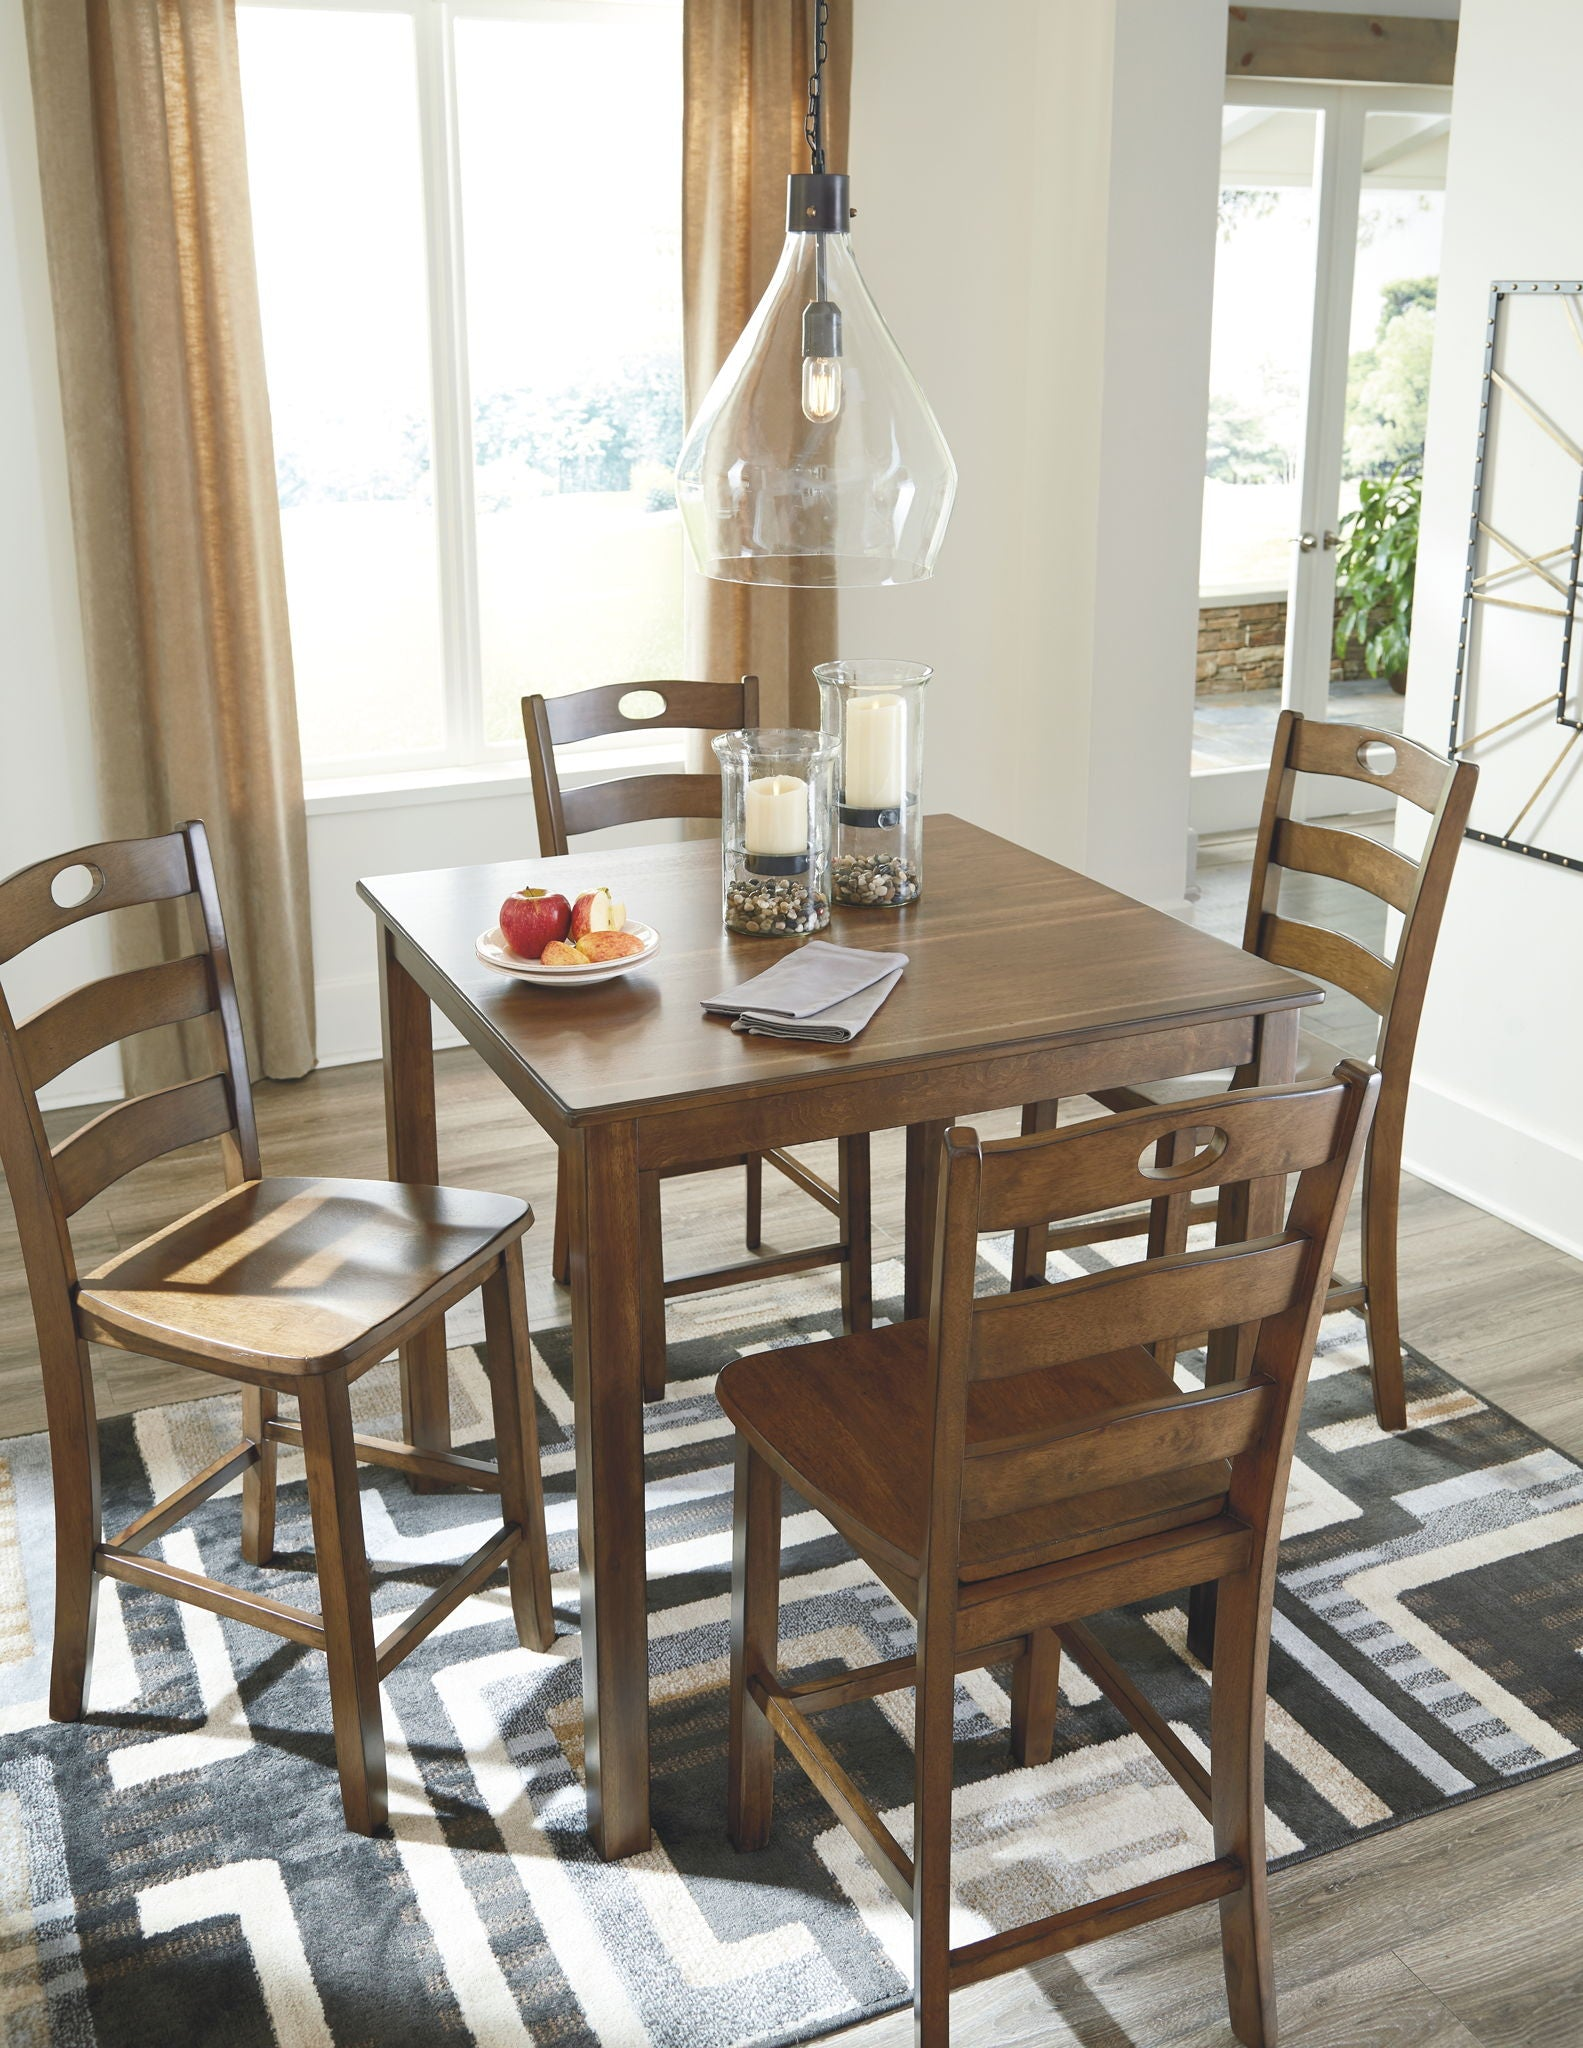 Hazelteen Counter Height Dining Room Table and Bar Stools (Set of 5) | Calgary's Furniture Store